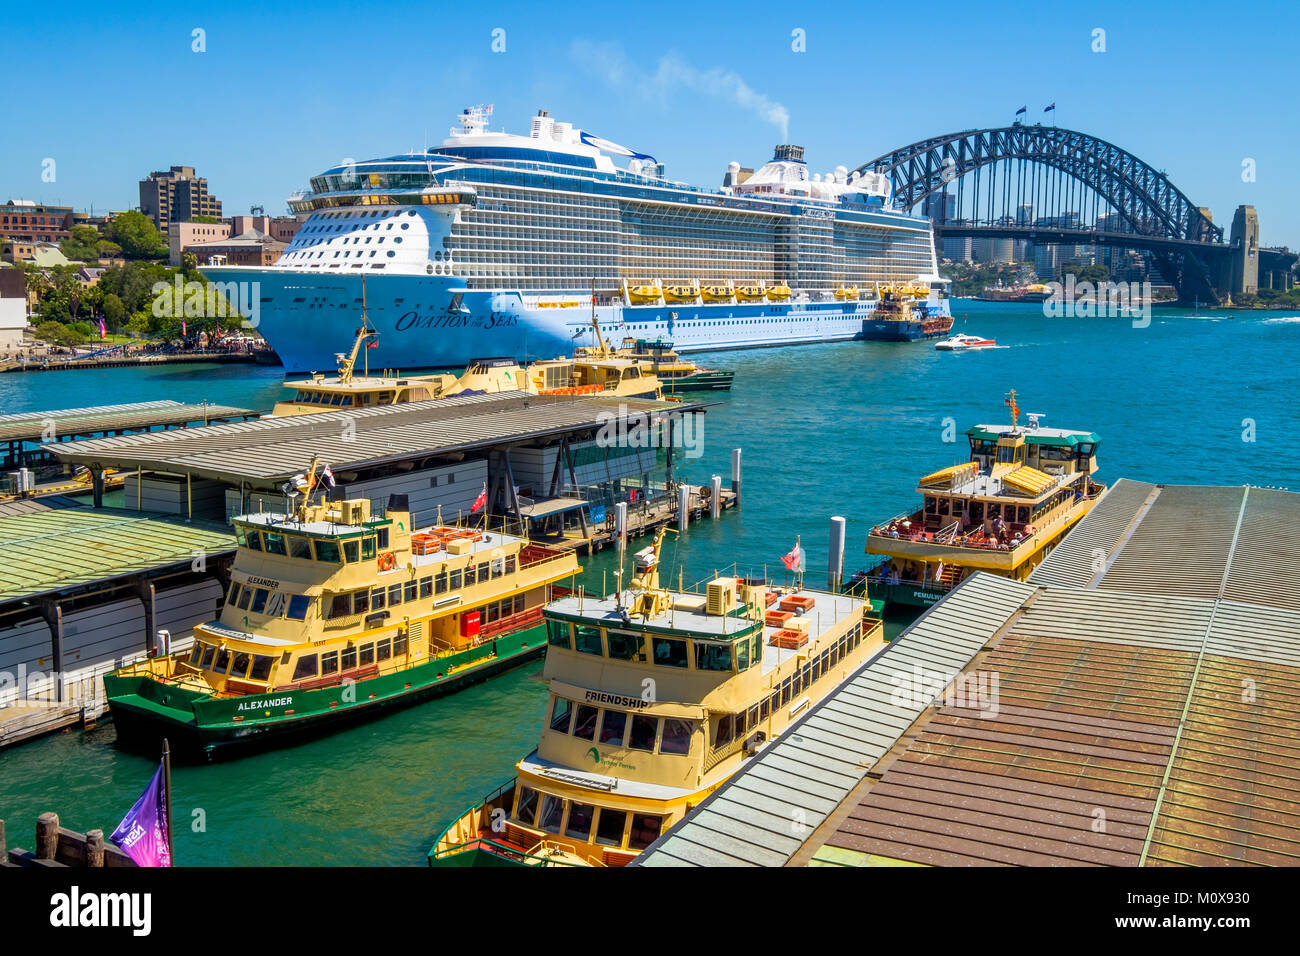 Royal Caribbean's Ovation of the Seas cruise ship moored at Overseas Passenger Terminal in Circular Quay, Sydney, - Stock Image